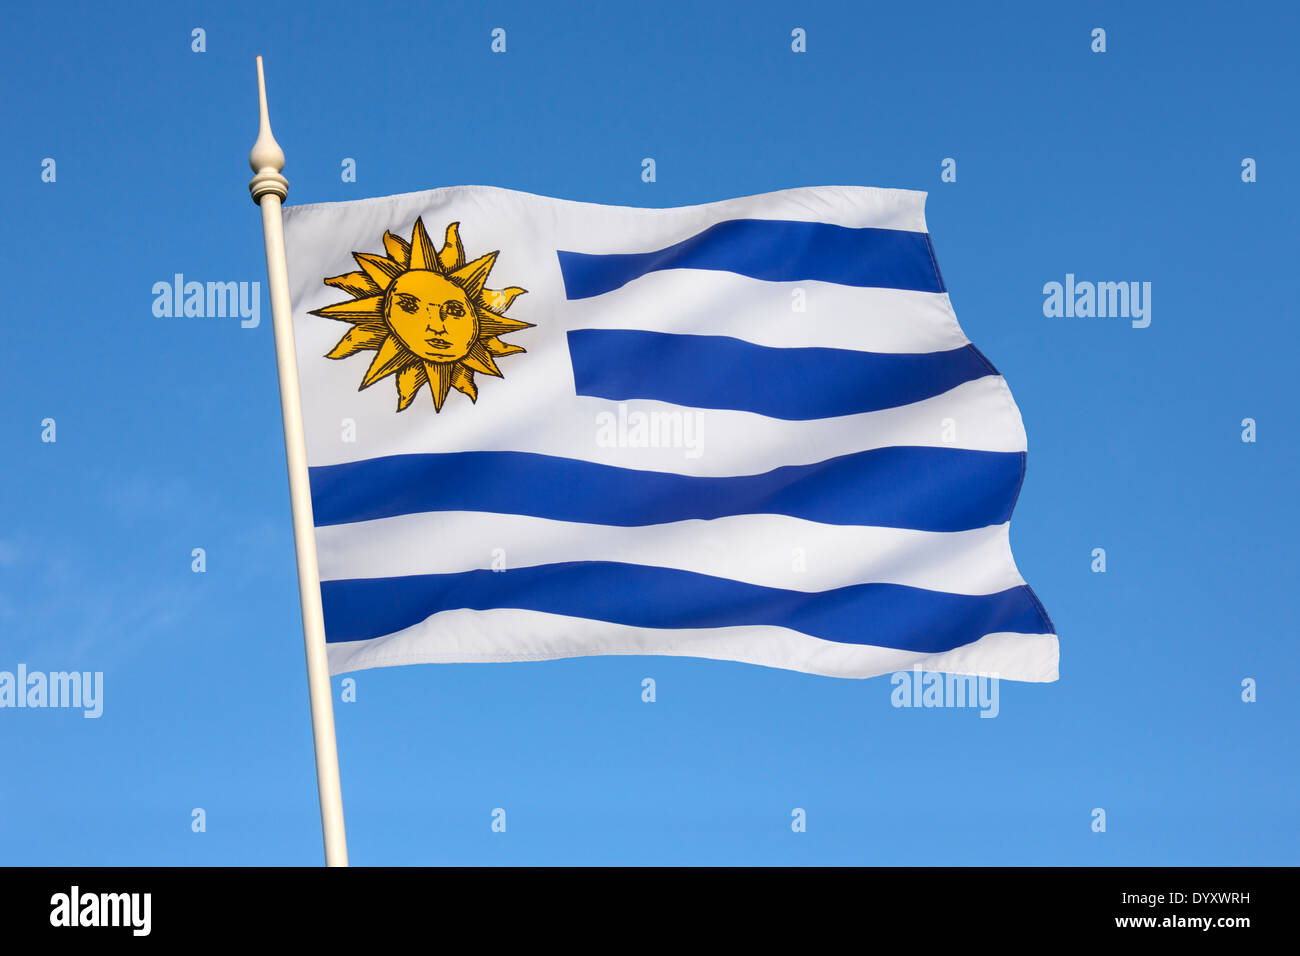 The national flag of Uruguay. - Stock Image